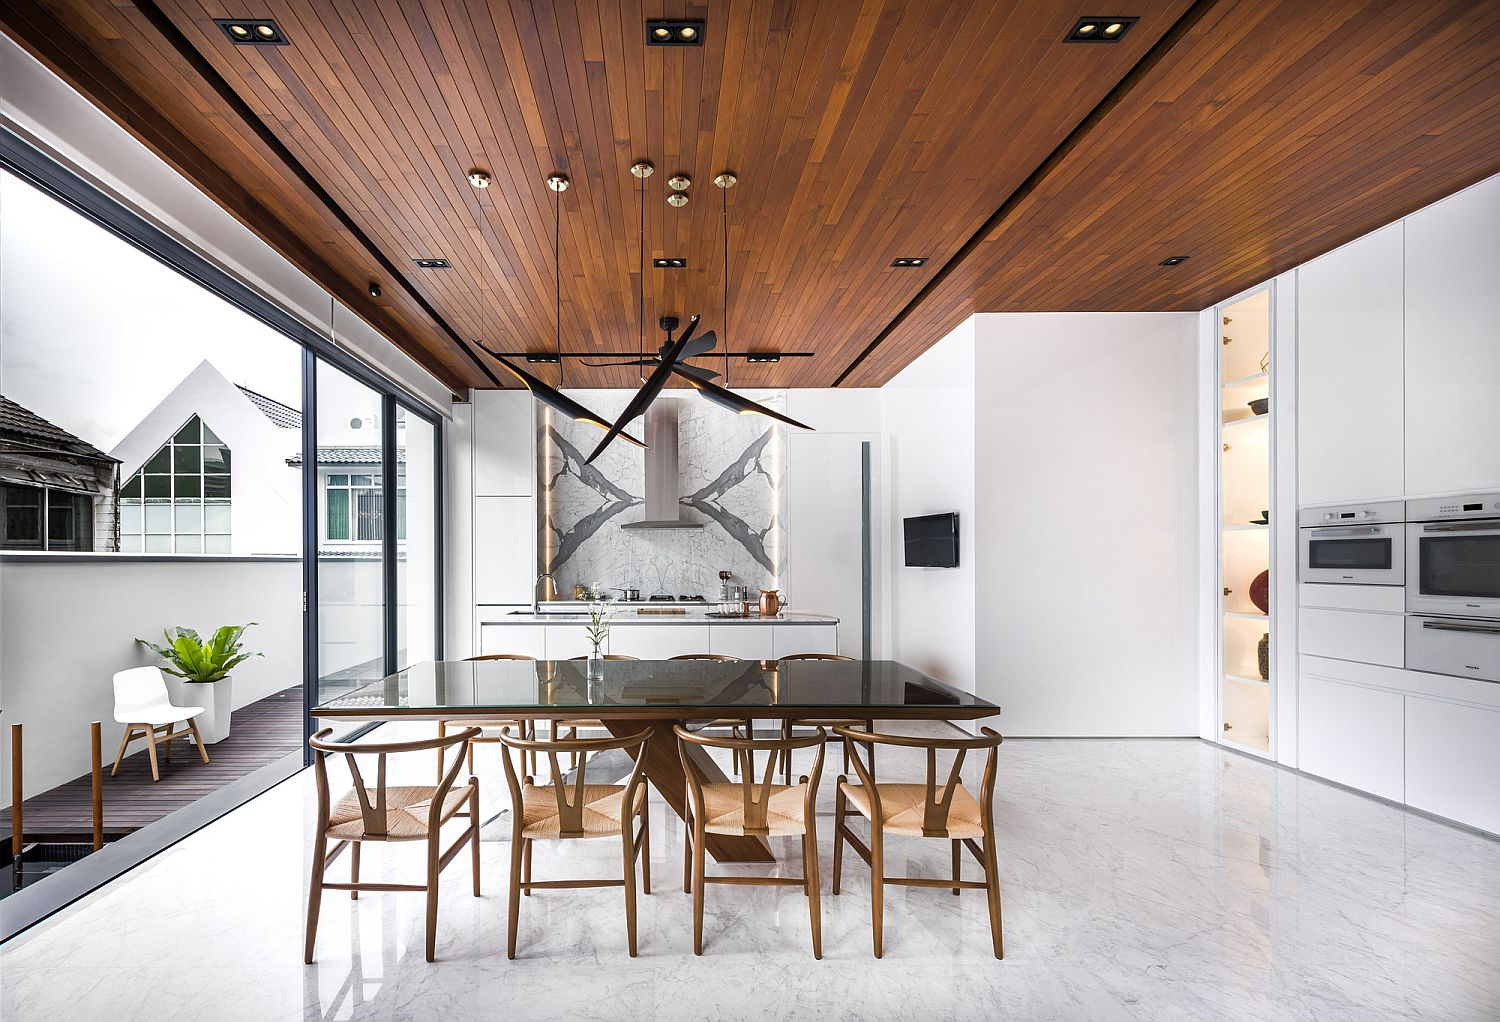 Kitchen and dining space in white with wooden ceiling